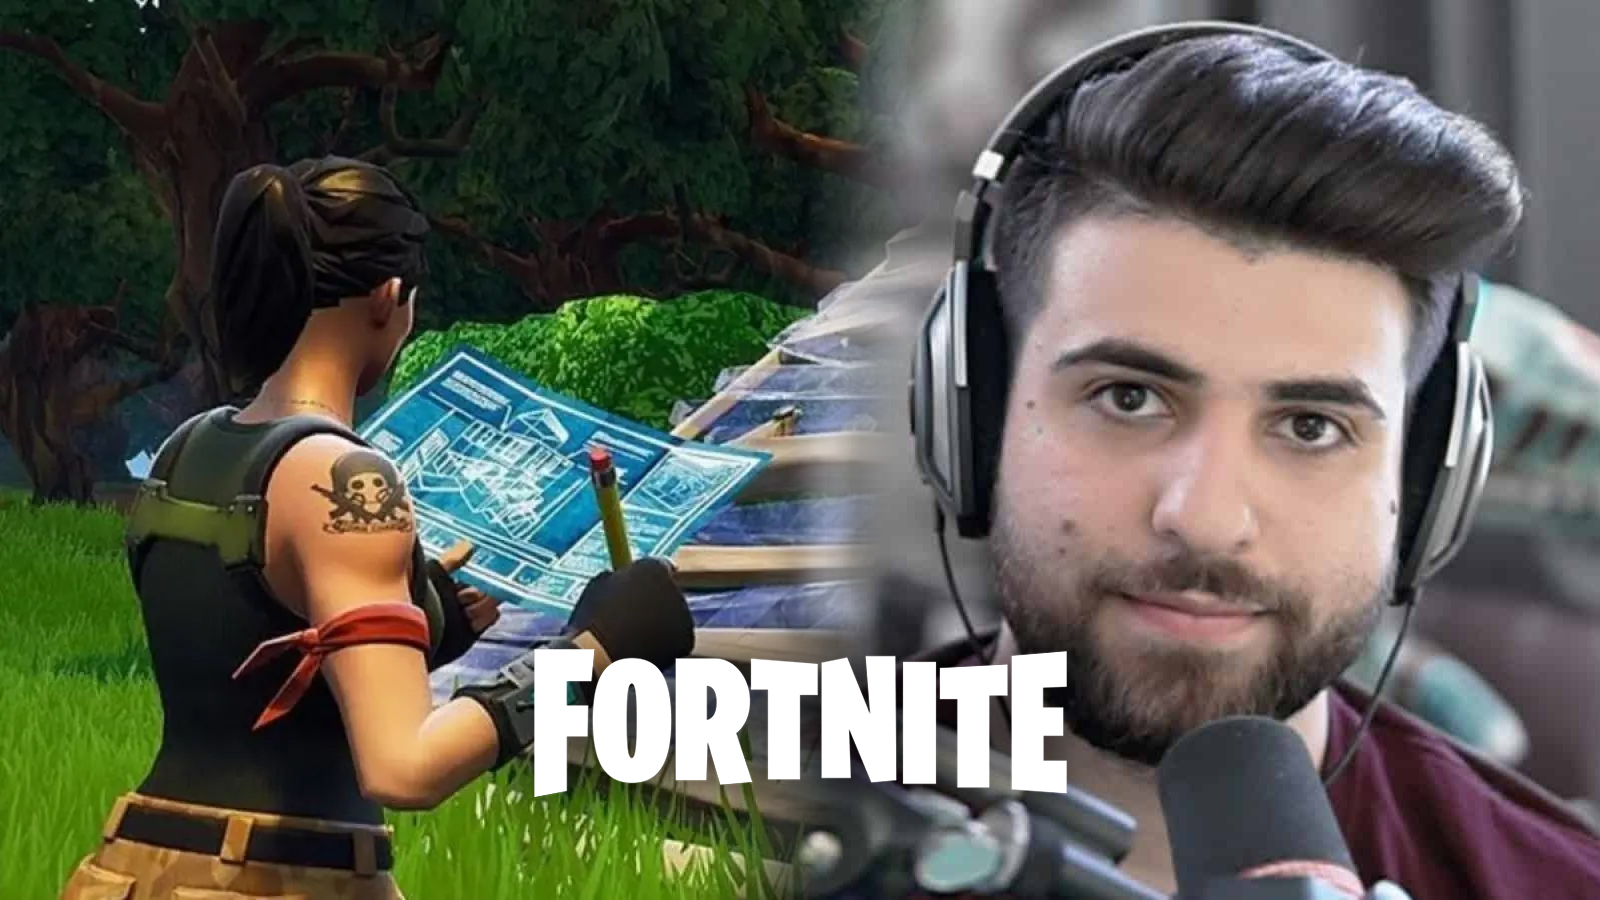 Fortnite pre-editing changes with SypherPK